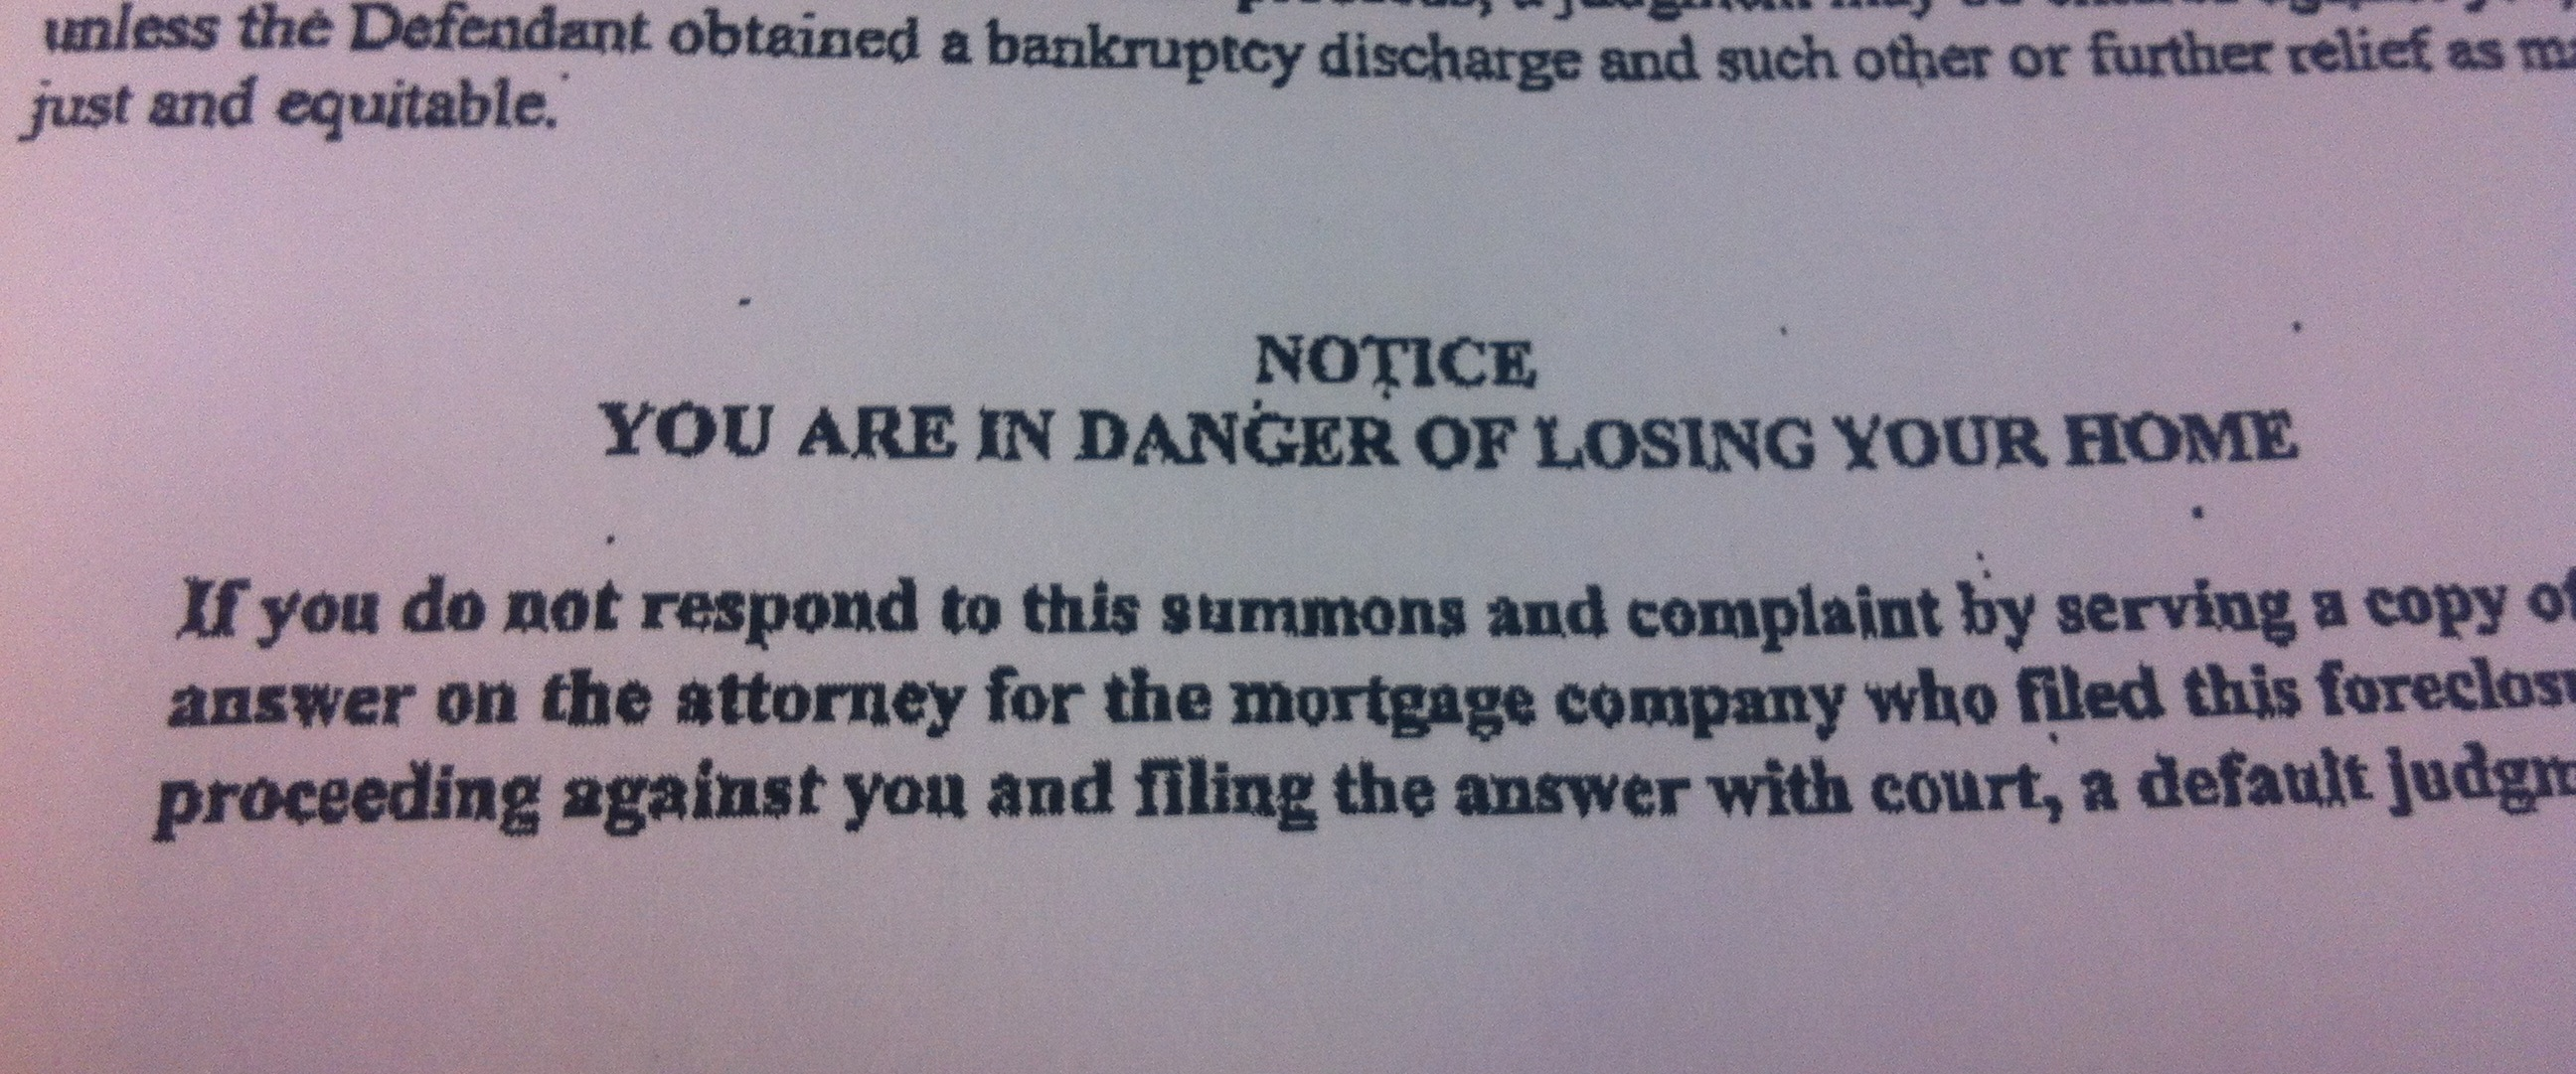 In judicial foreclosure states, homeowners in default will be served a summons and complaint, which they should promptly respond to.